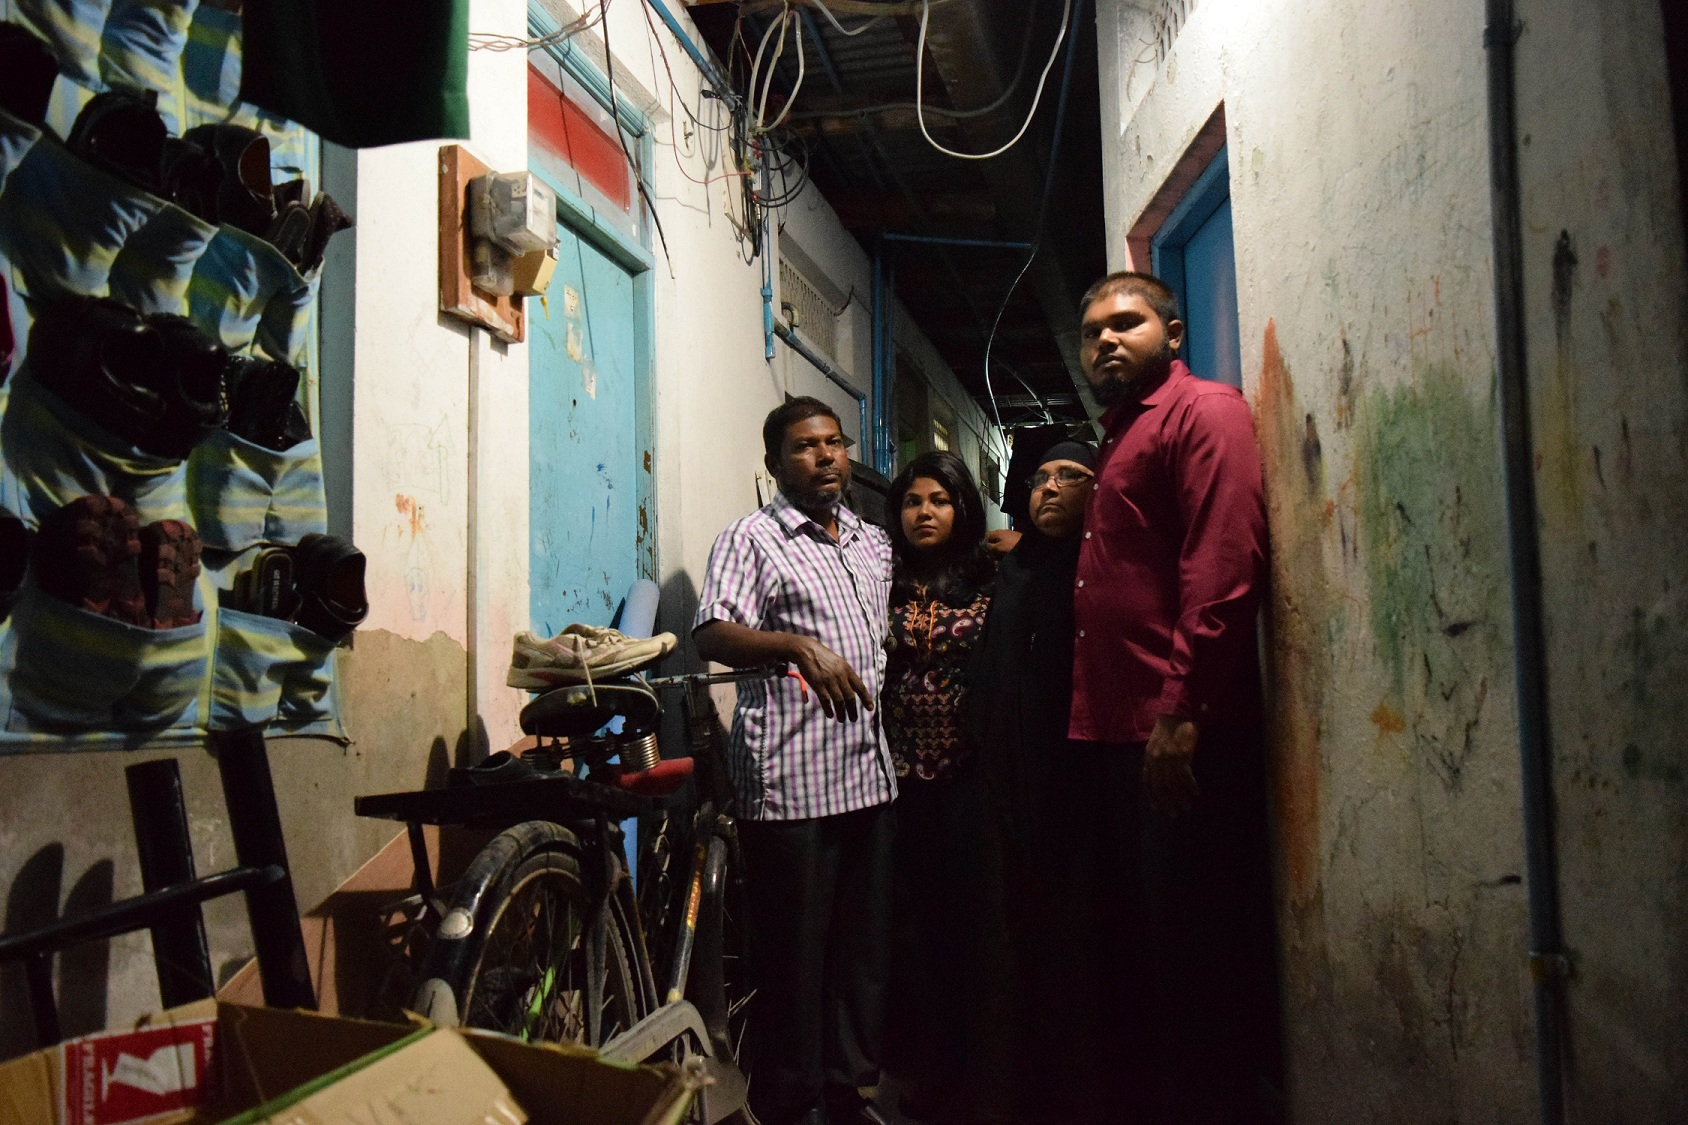 The family of Hussain Humam Ahmed at their residence in Malé. Kinanath is on the right. [Credit: Omkar Khandekar]